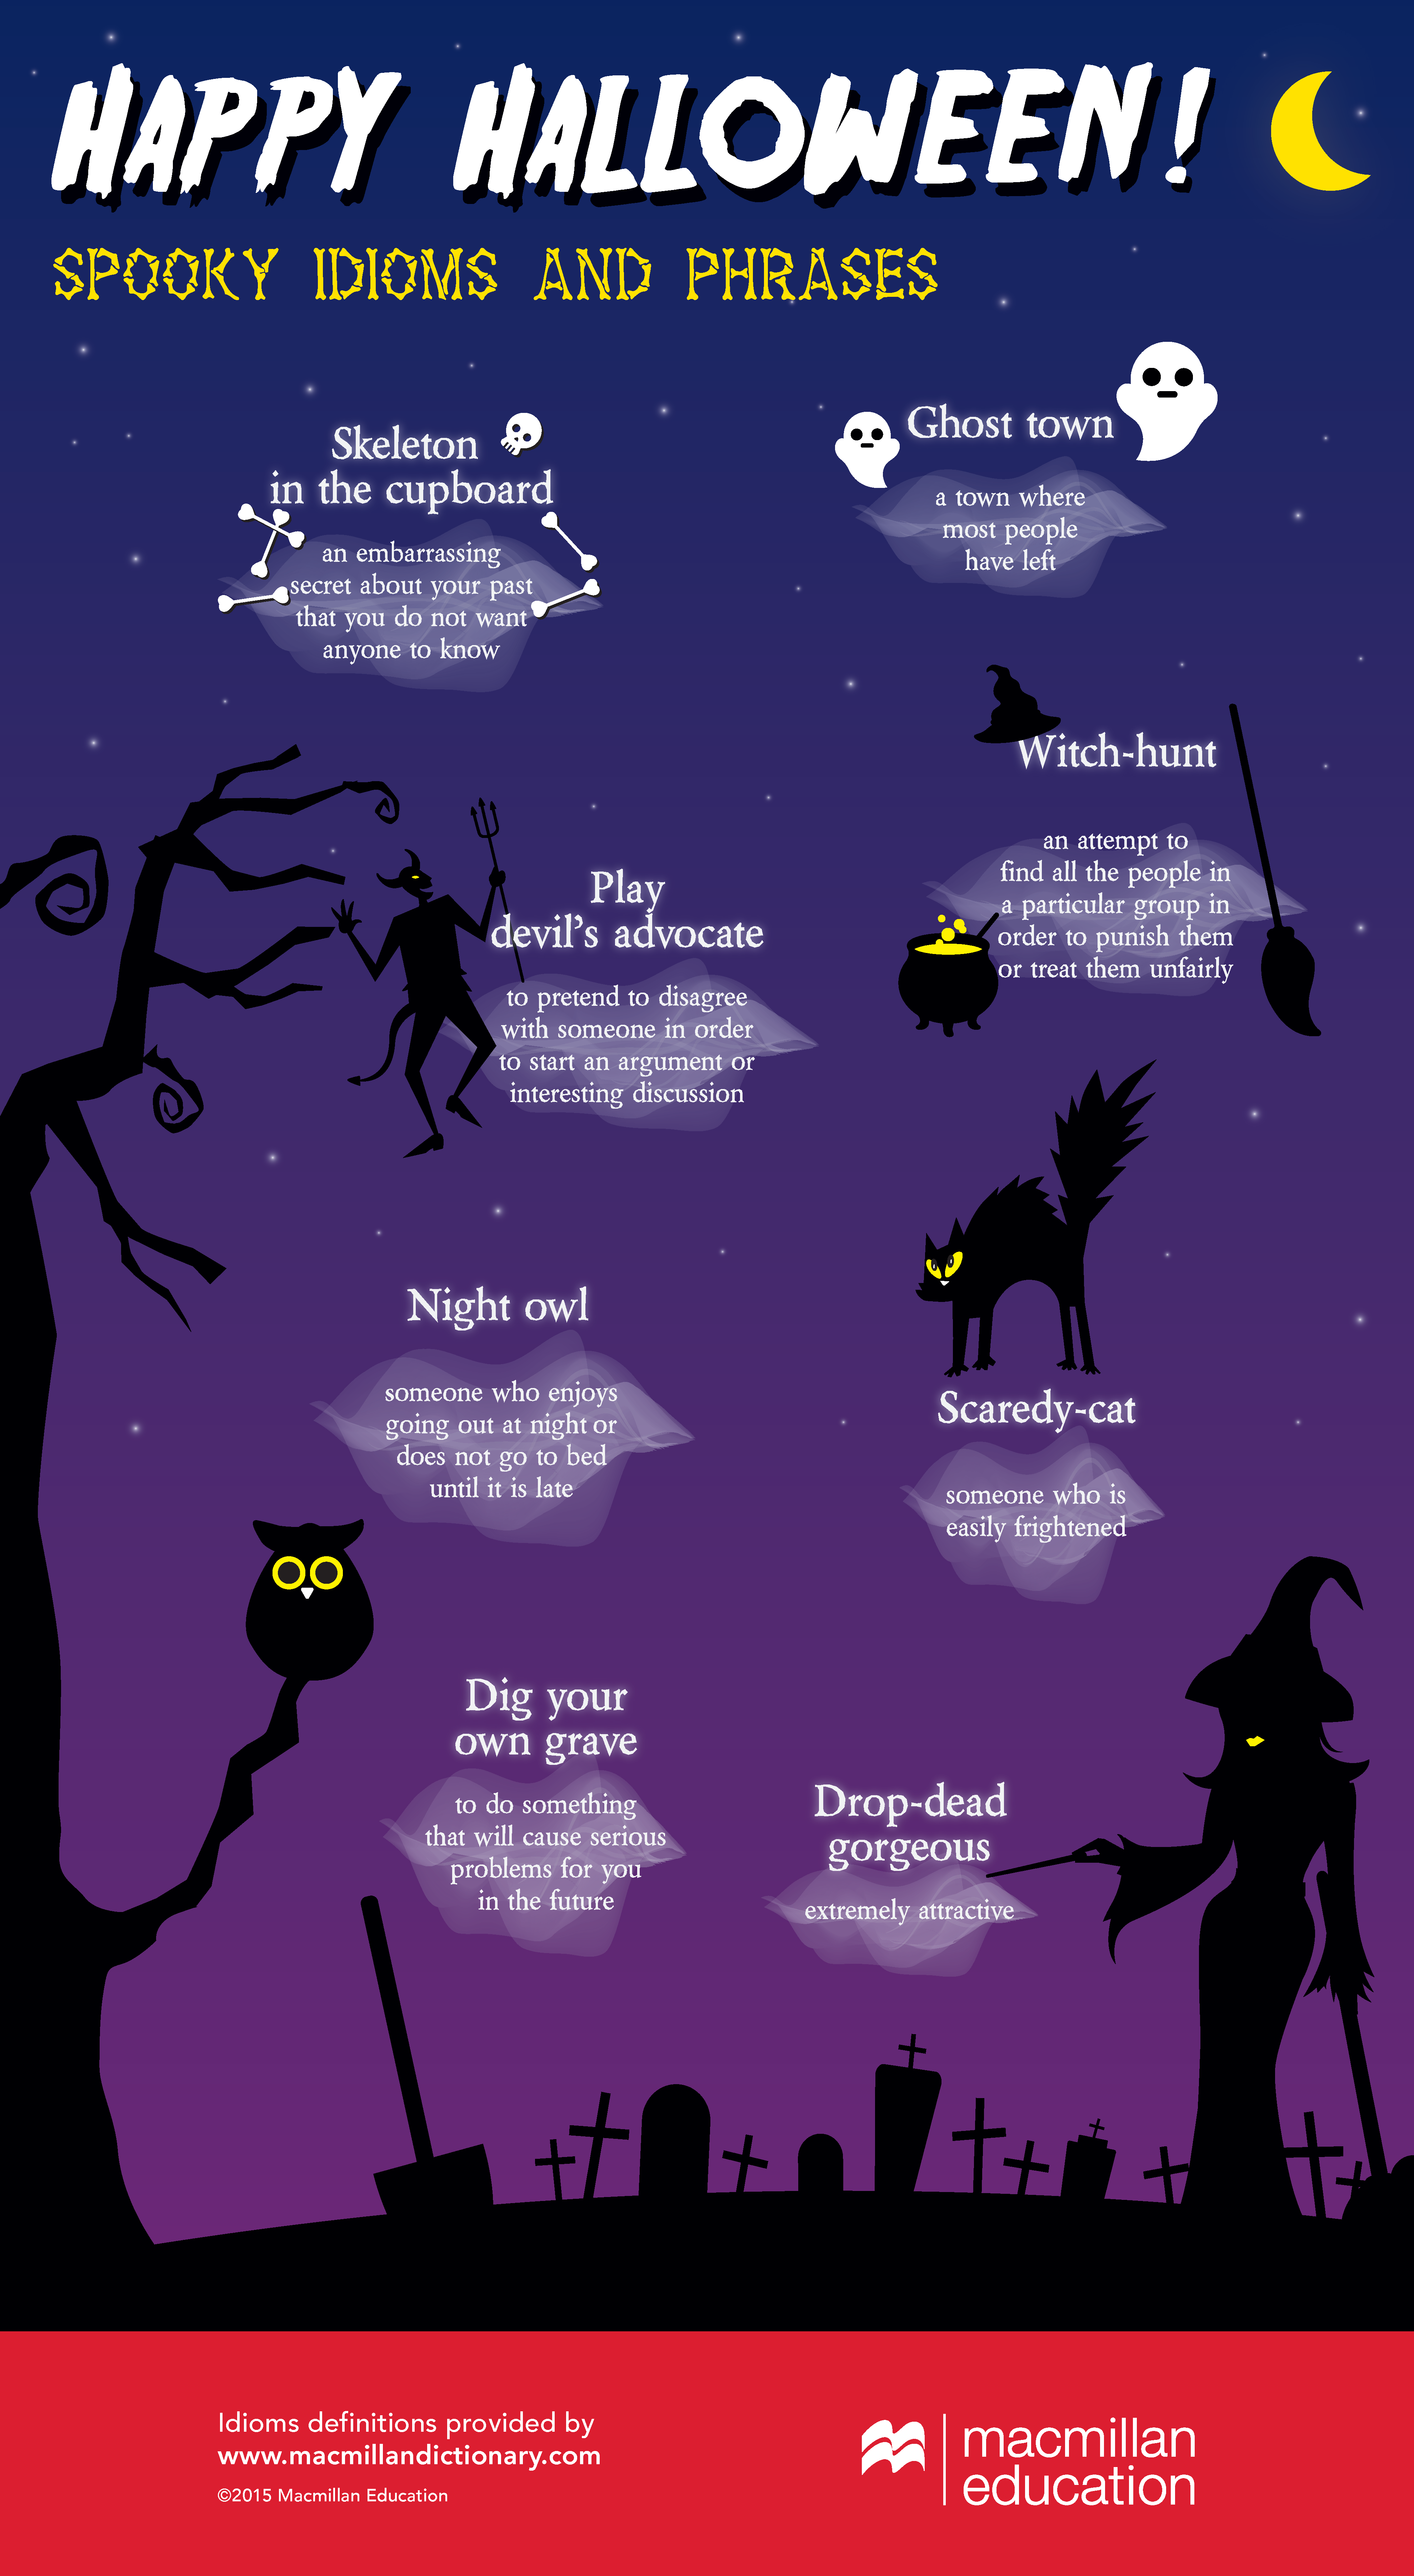 Sooky Idioms And Phrases Just In Time For Halloween Via